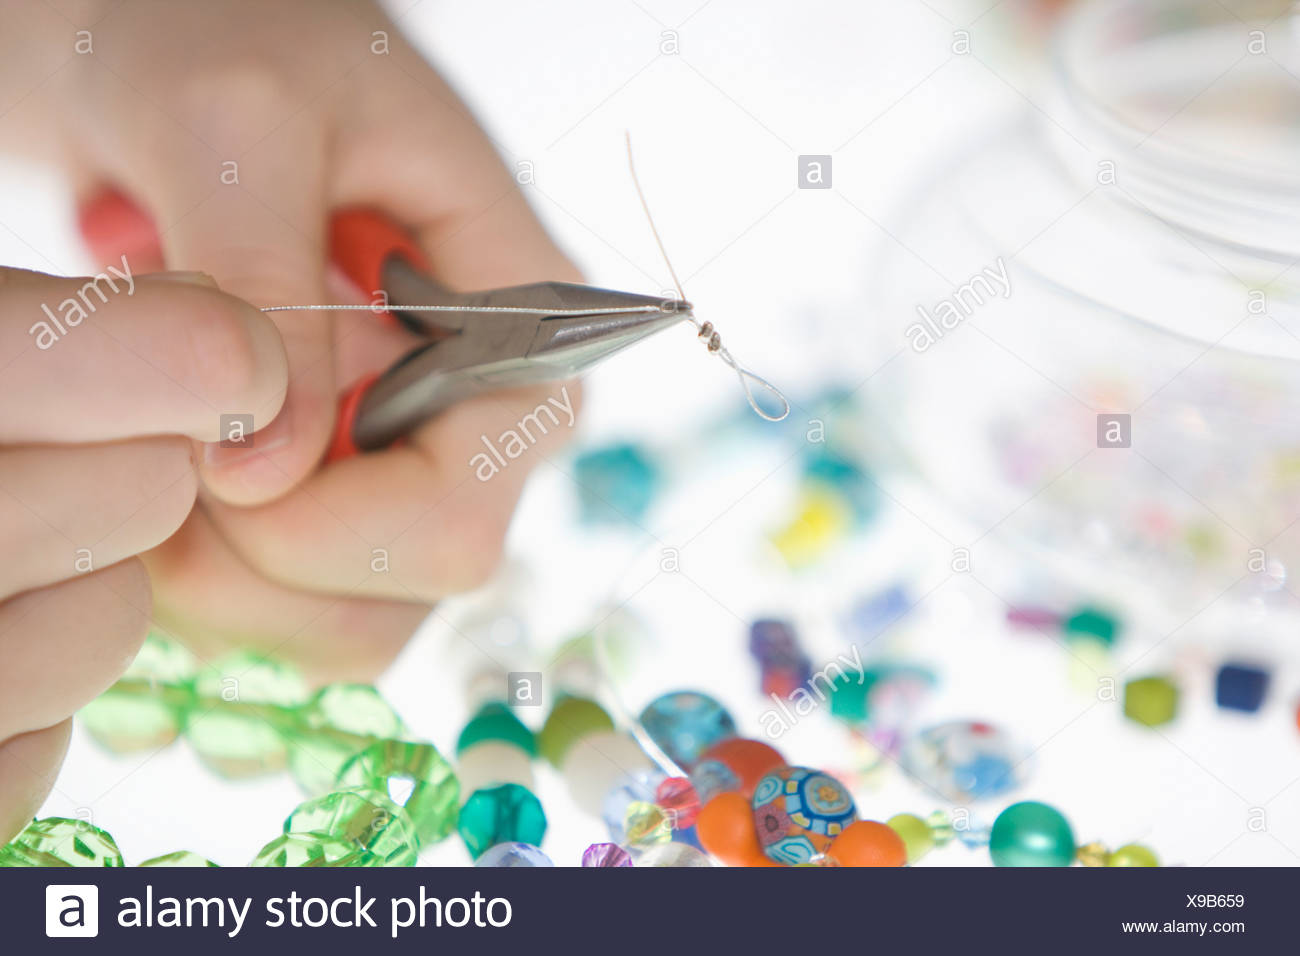 A young girl making a bead necklace with pliers and wire thread, close-up of hands - Stock Image